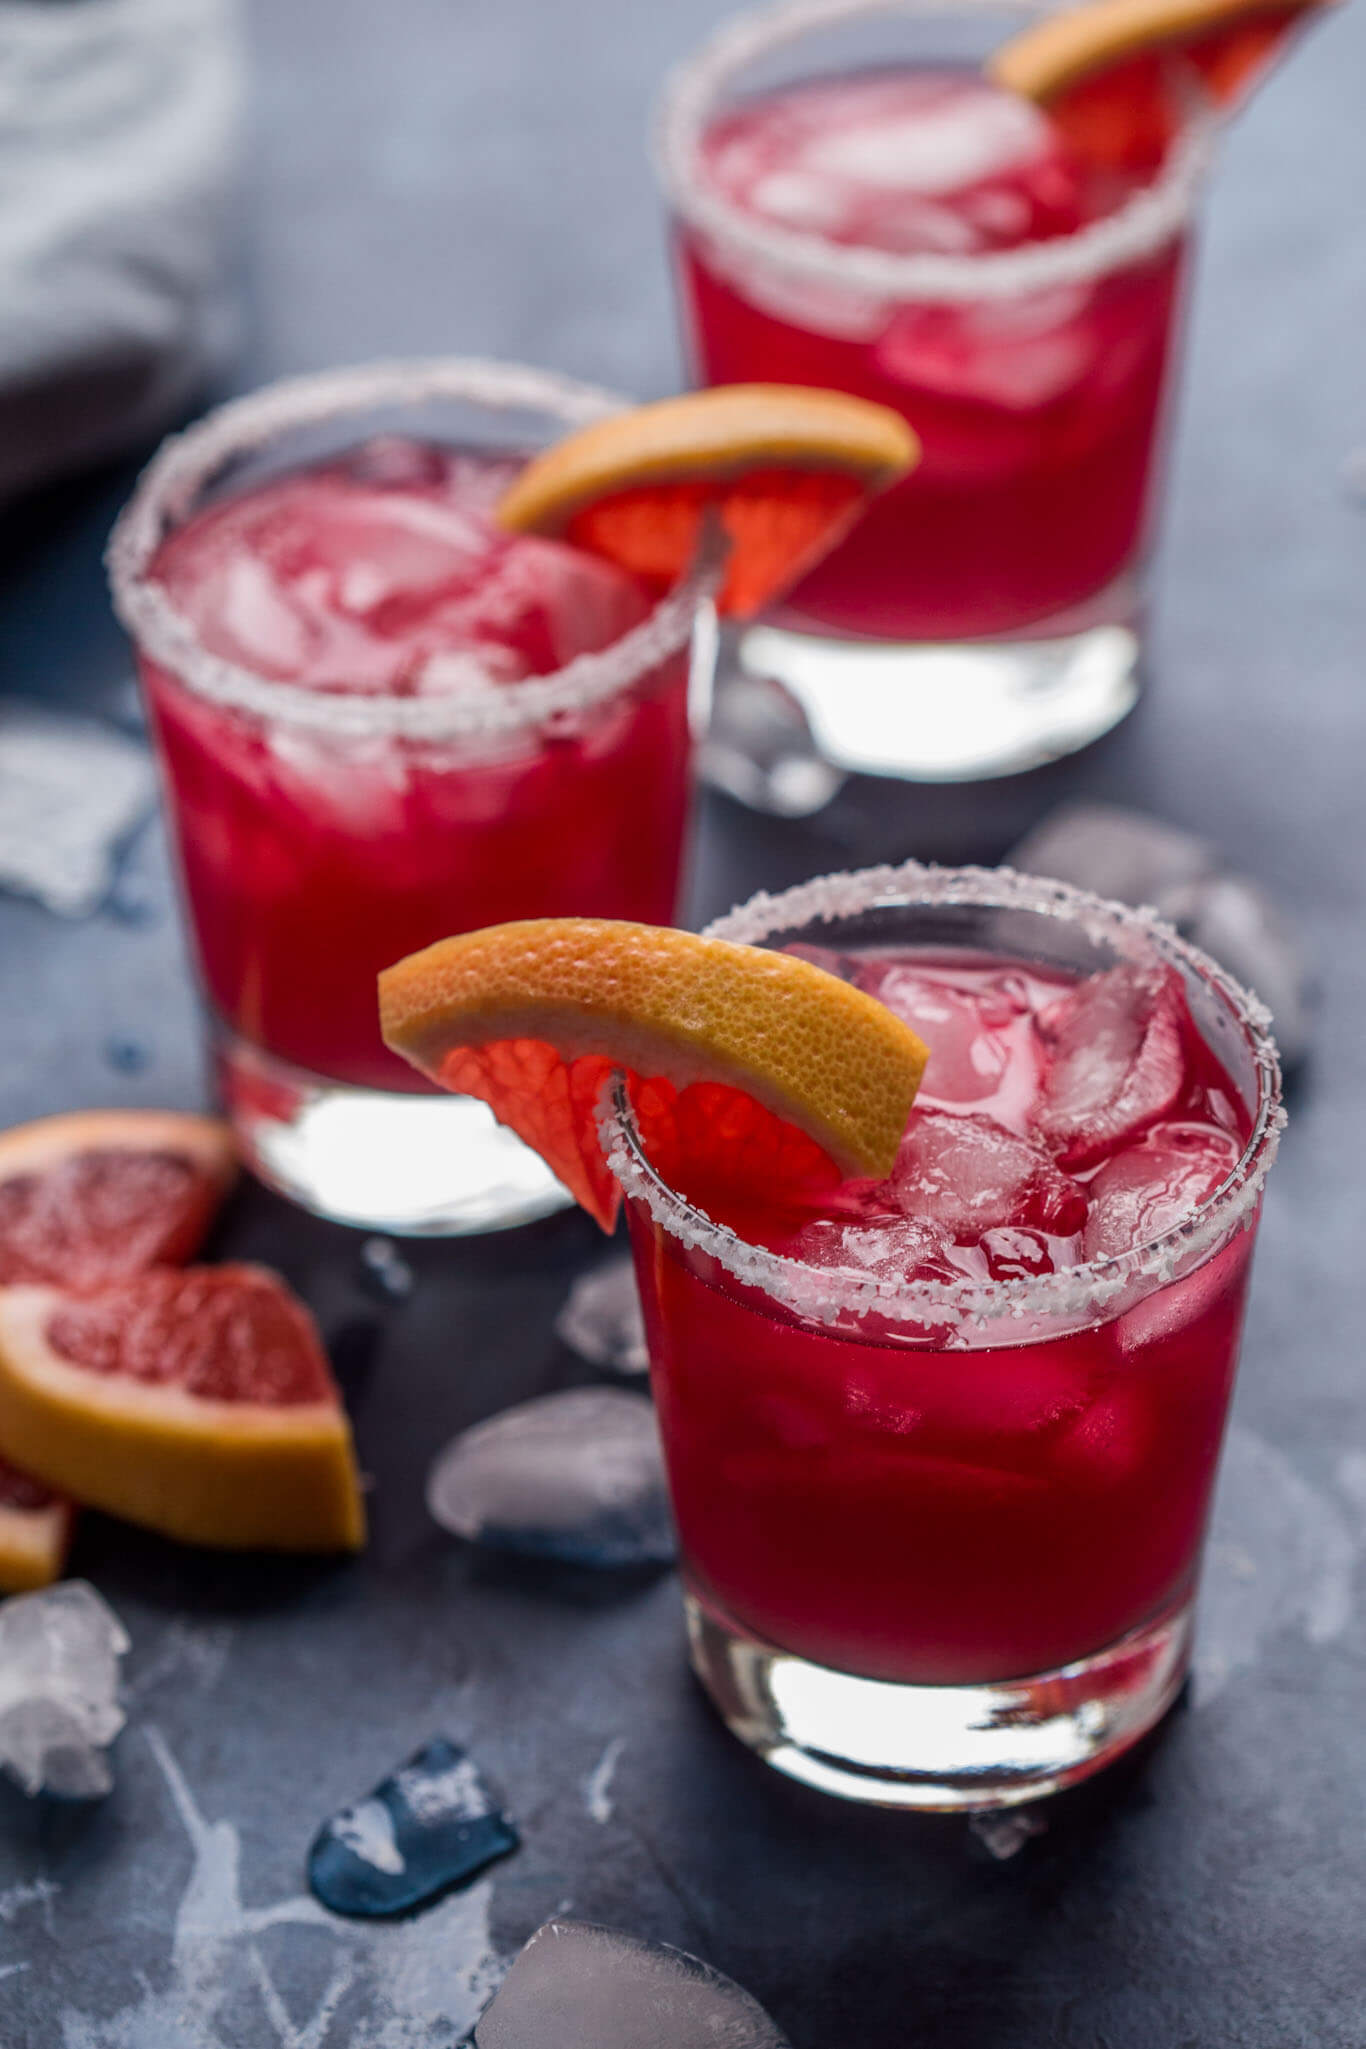 Hibiscus tea margaritas with wedges of grapefruit.